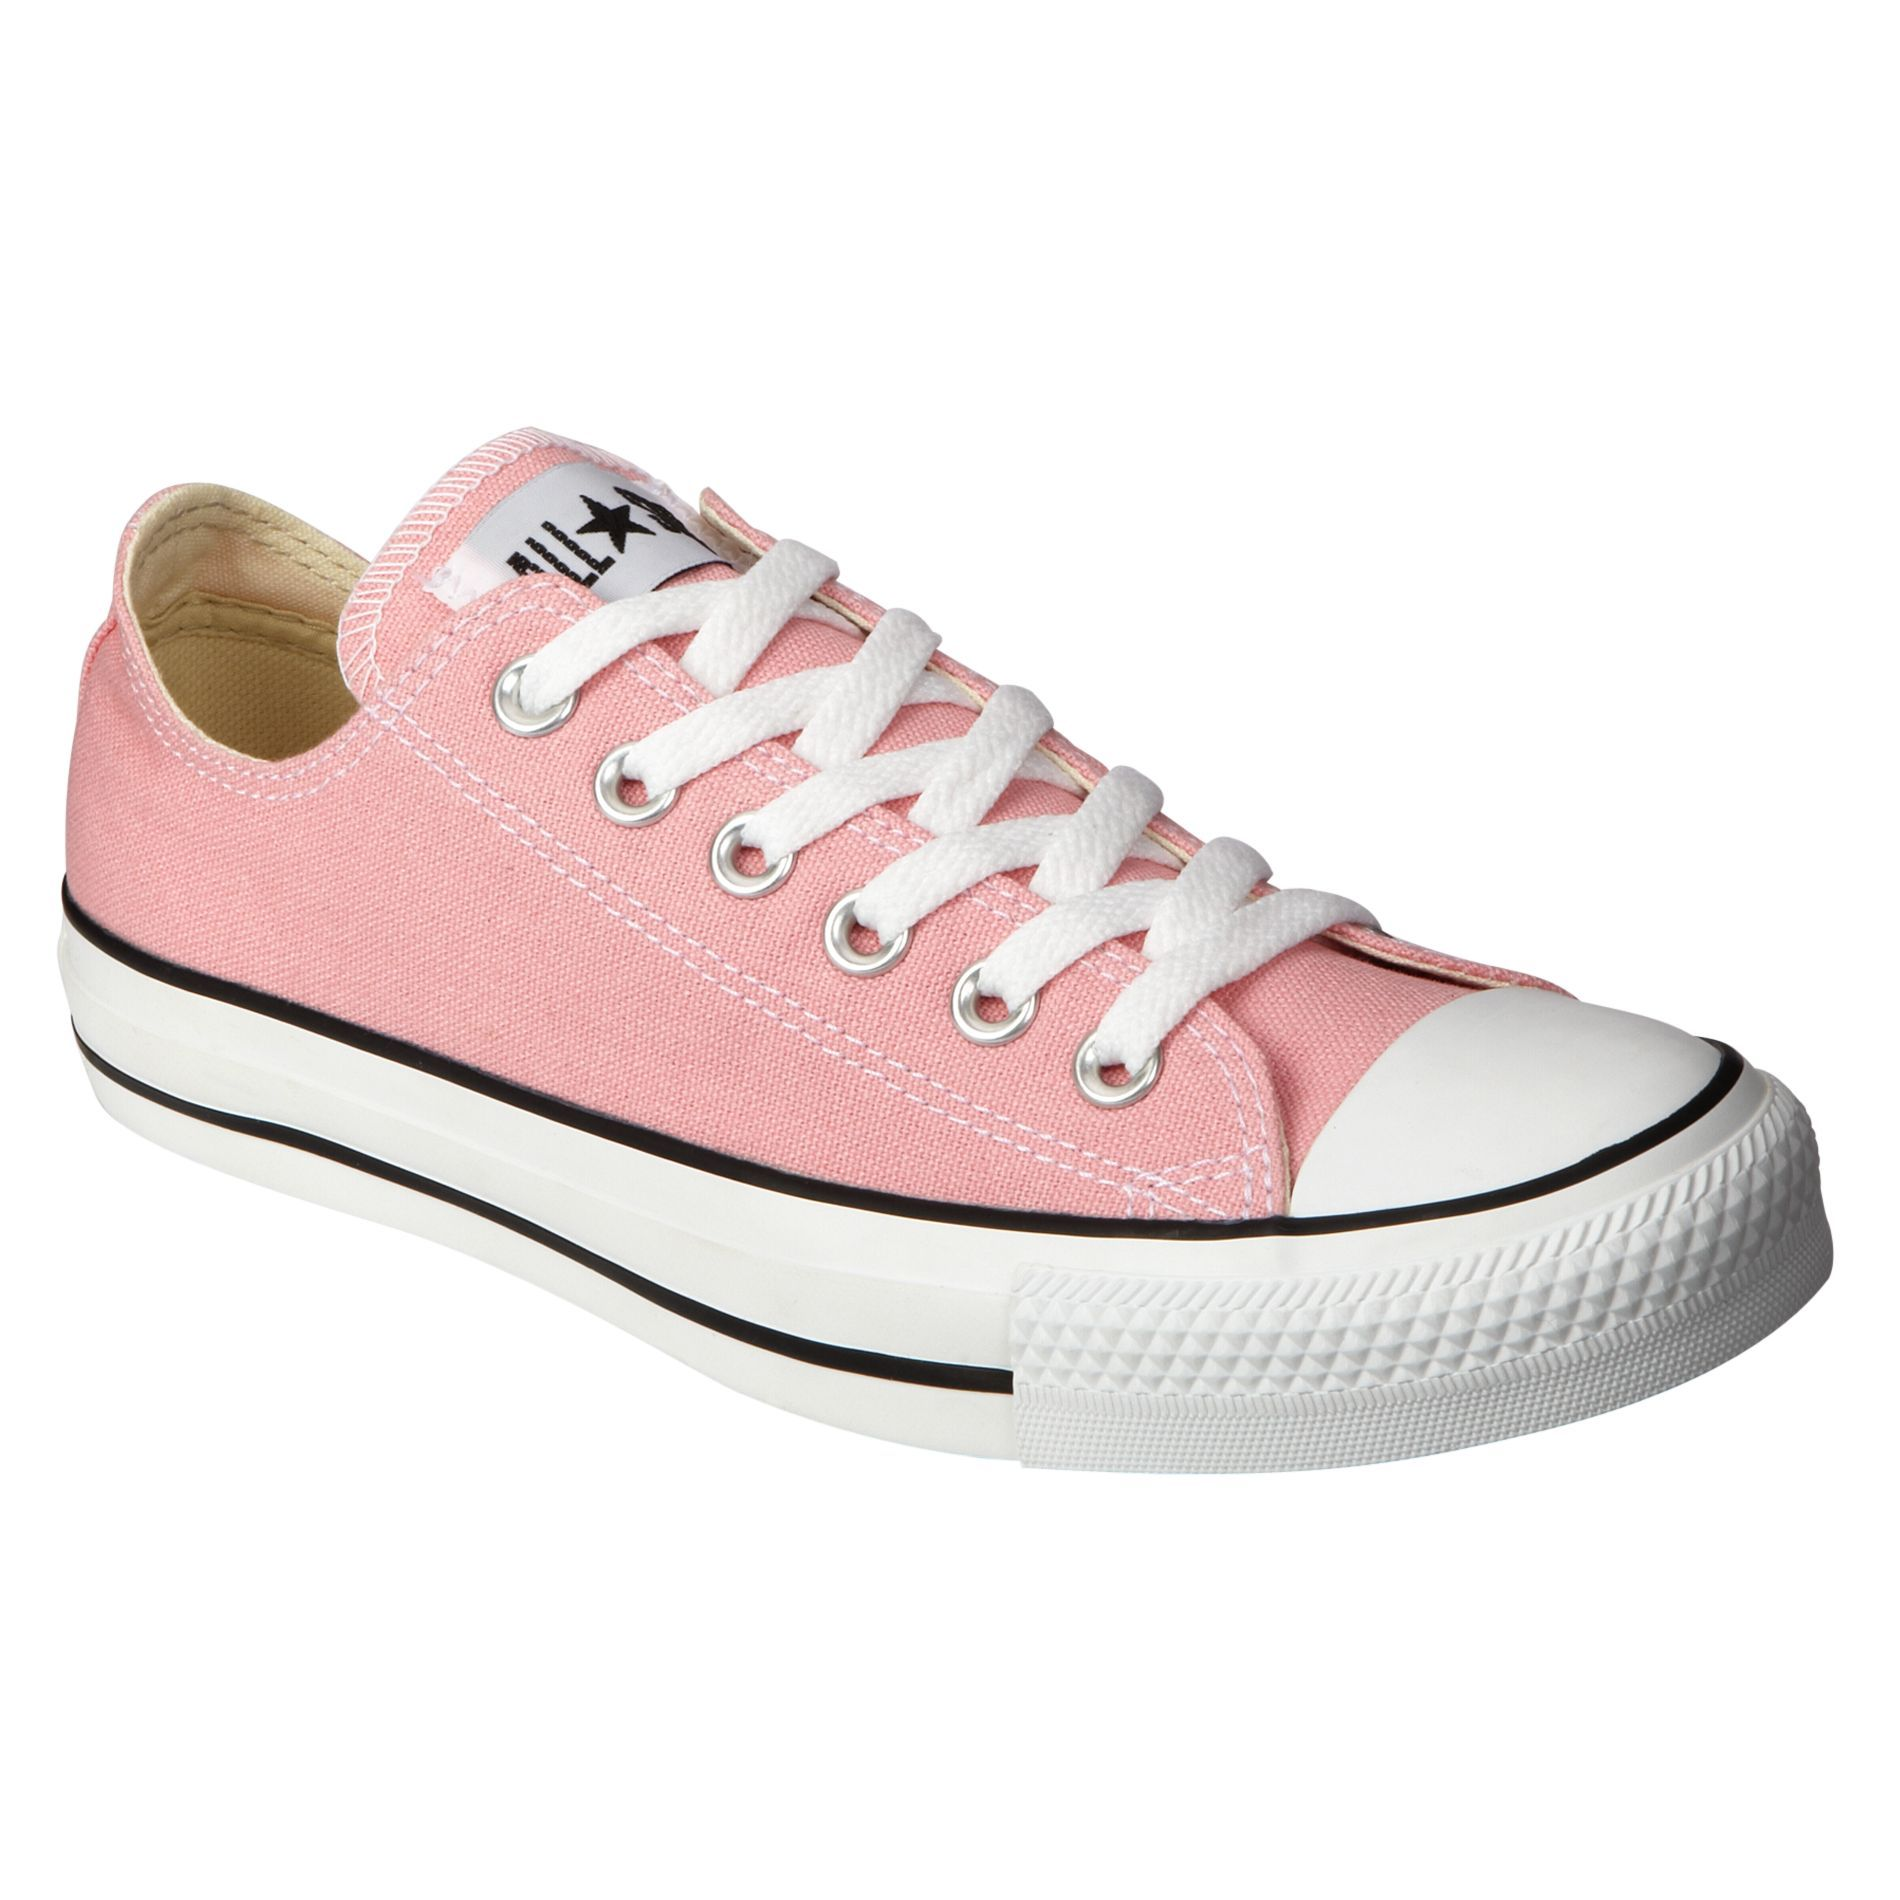 1a0015bb2505 Pink Converse All Star Shoes - Pink Chuck Taylor Converse Canvas Trainers  Women and Men